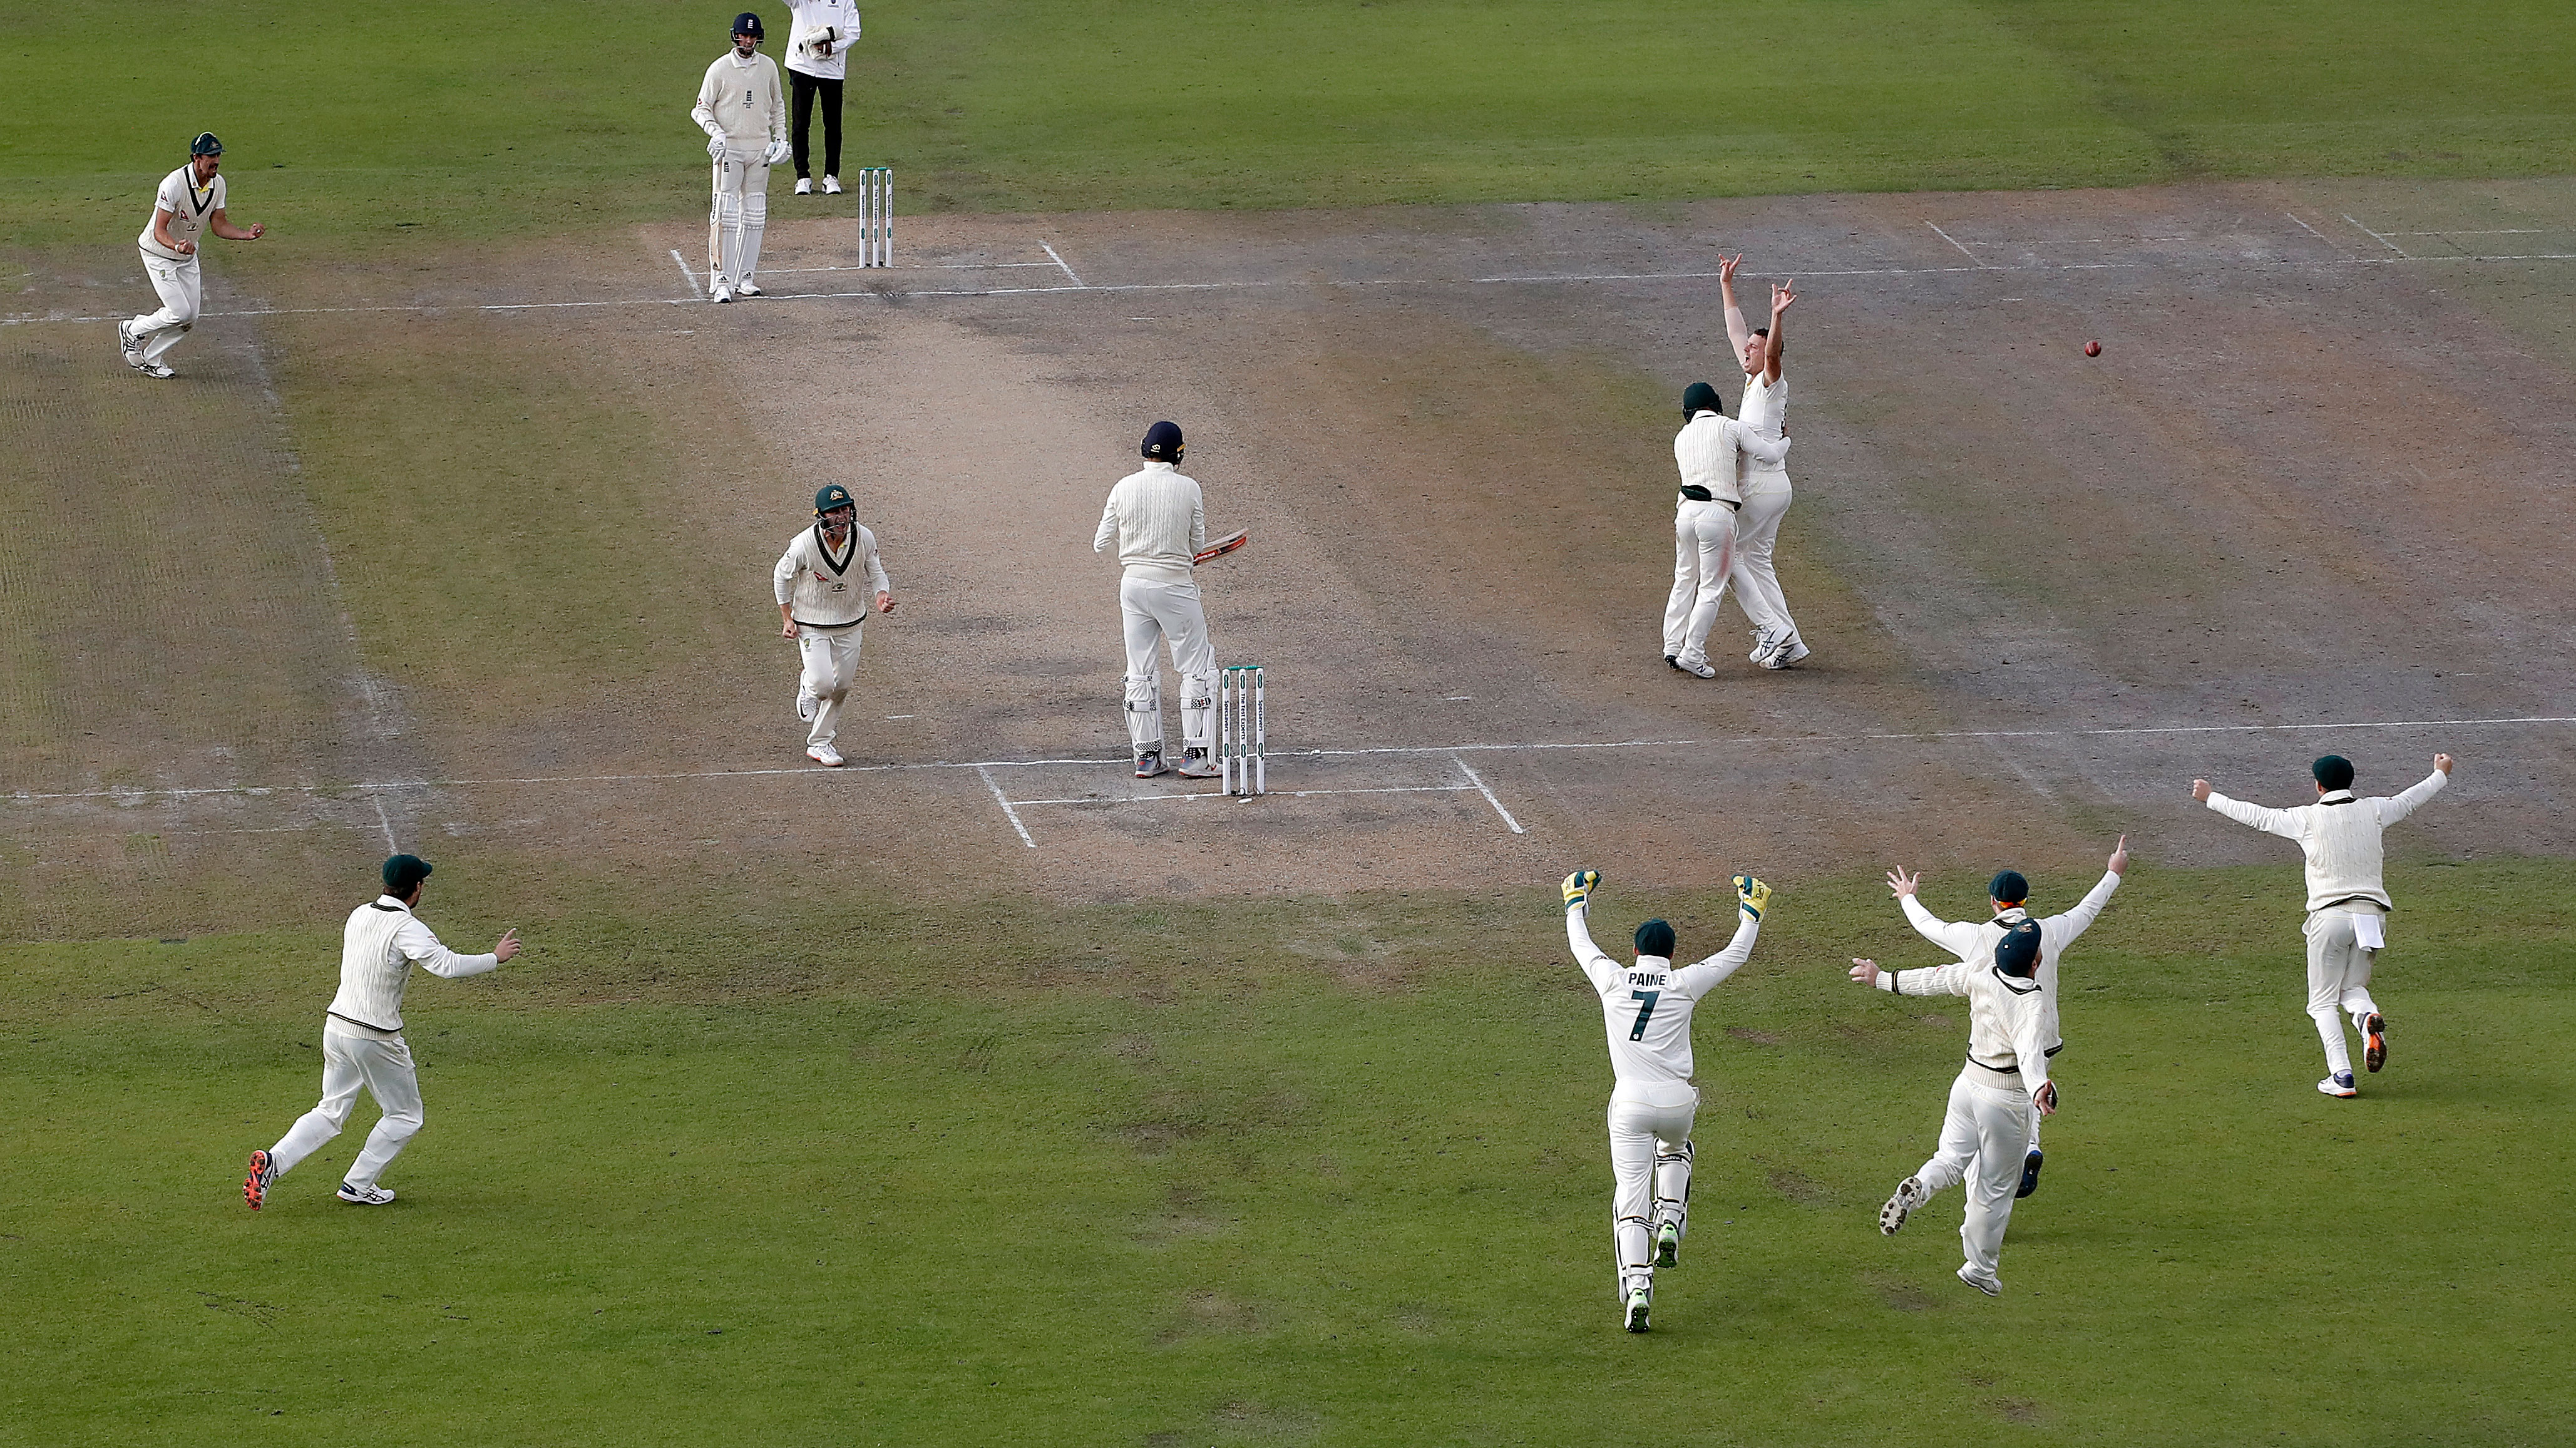 Josh Hazlewood and the Australian team react to the wicket that sealed the retention of the Ashes, Craig Overton, out lbw for 21.